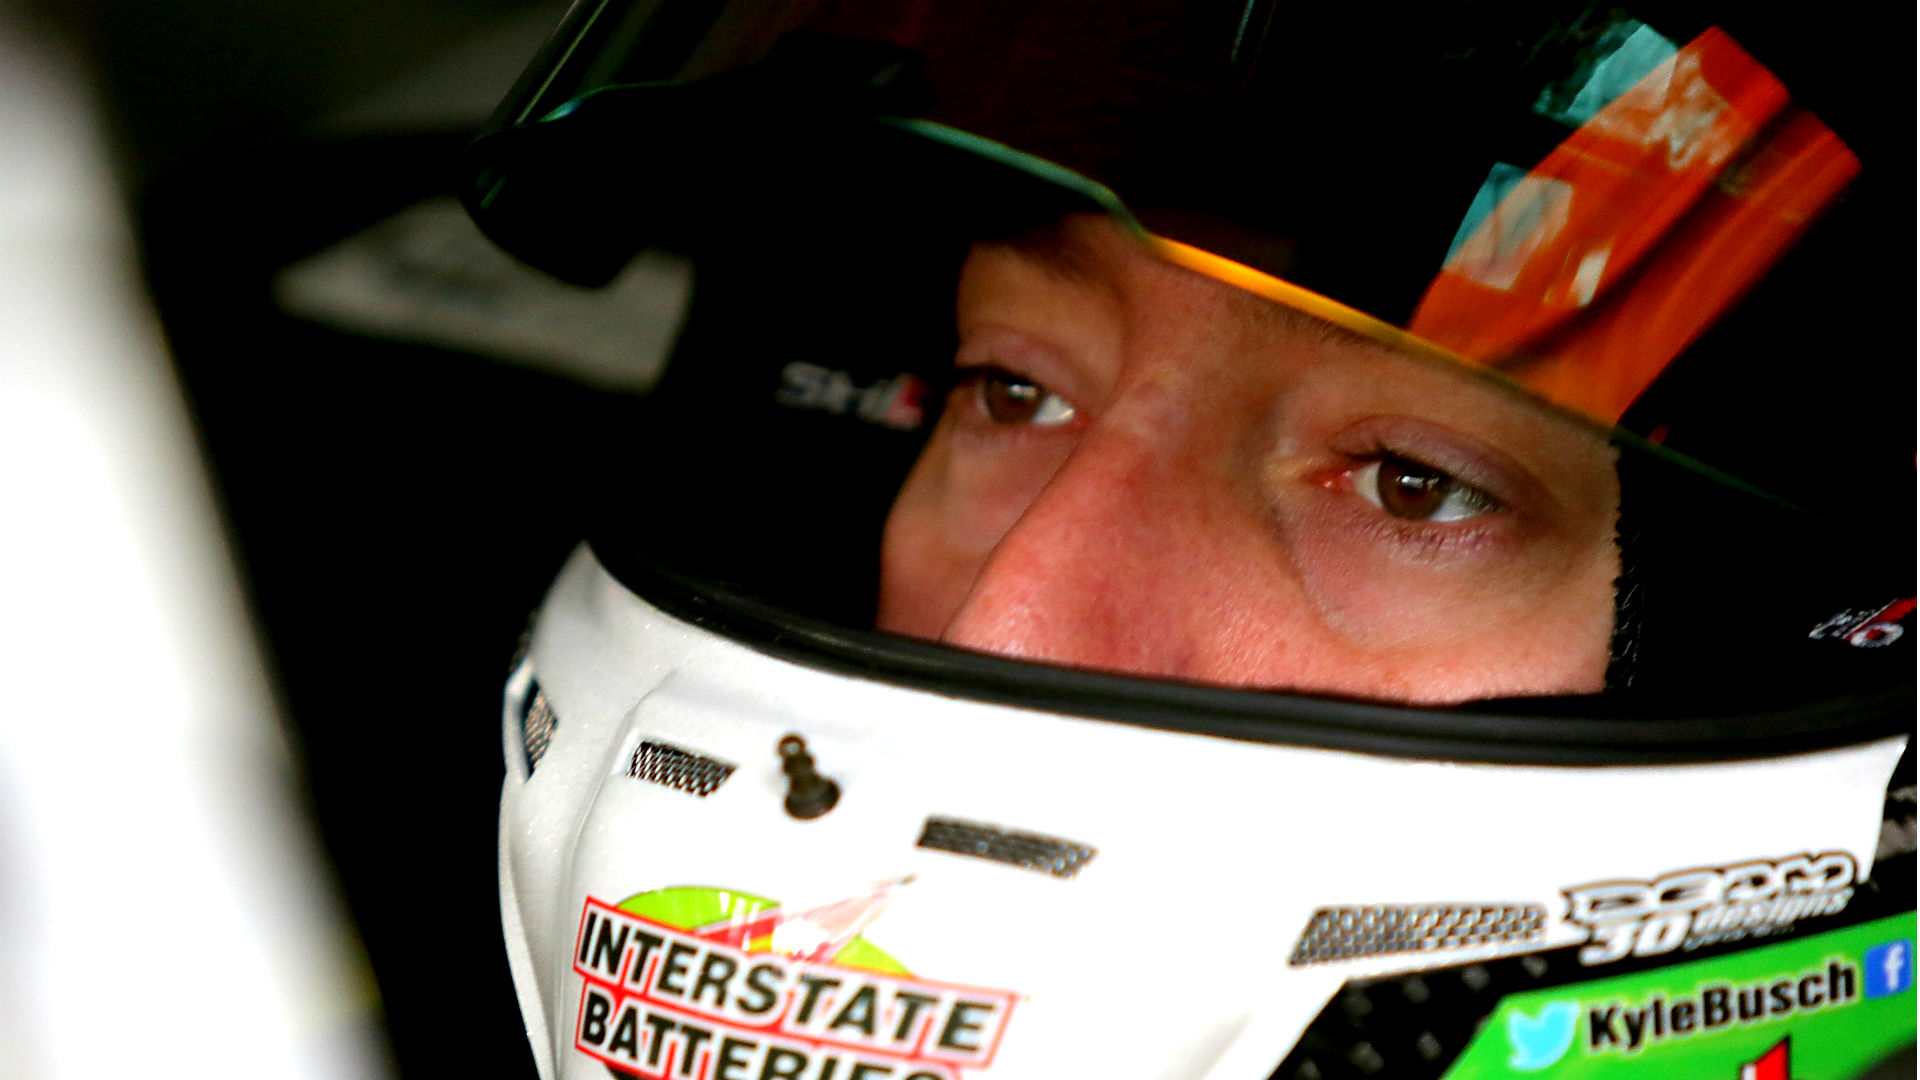 NASCAR odds and betting analysis – Harvick favored, Kyle Busch to come out swinging